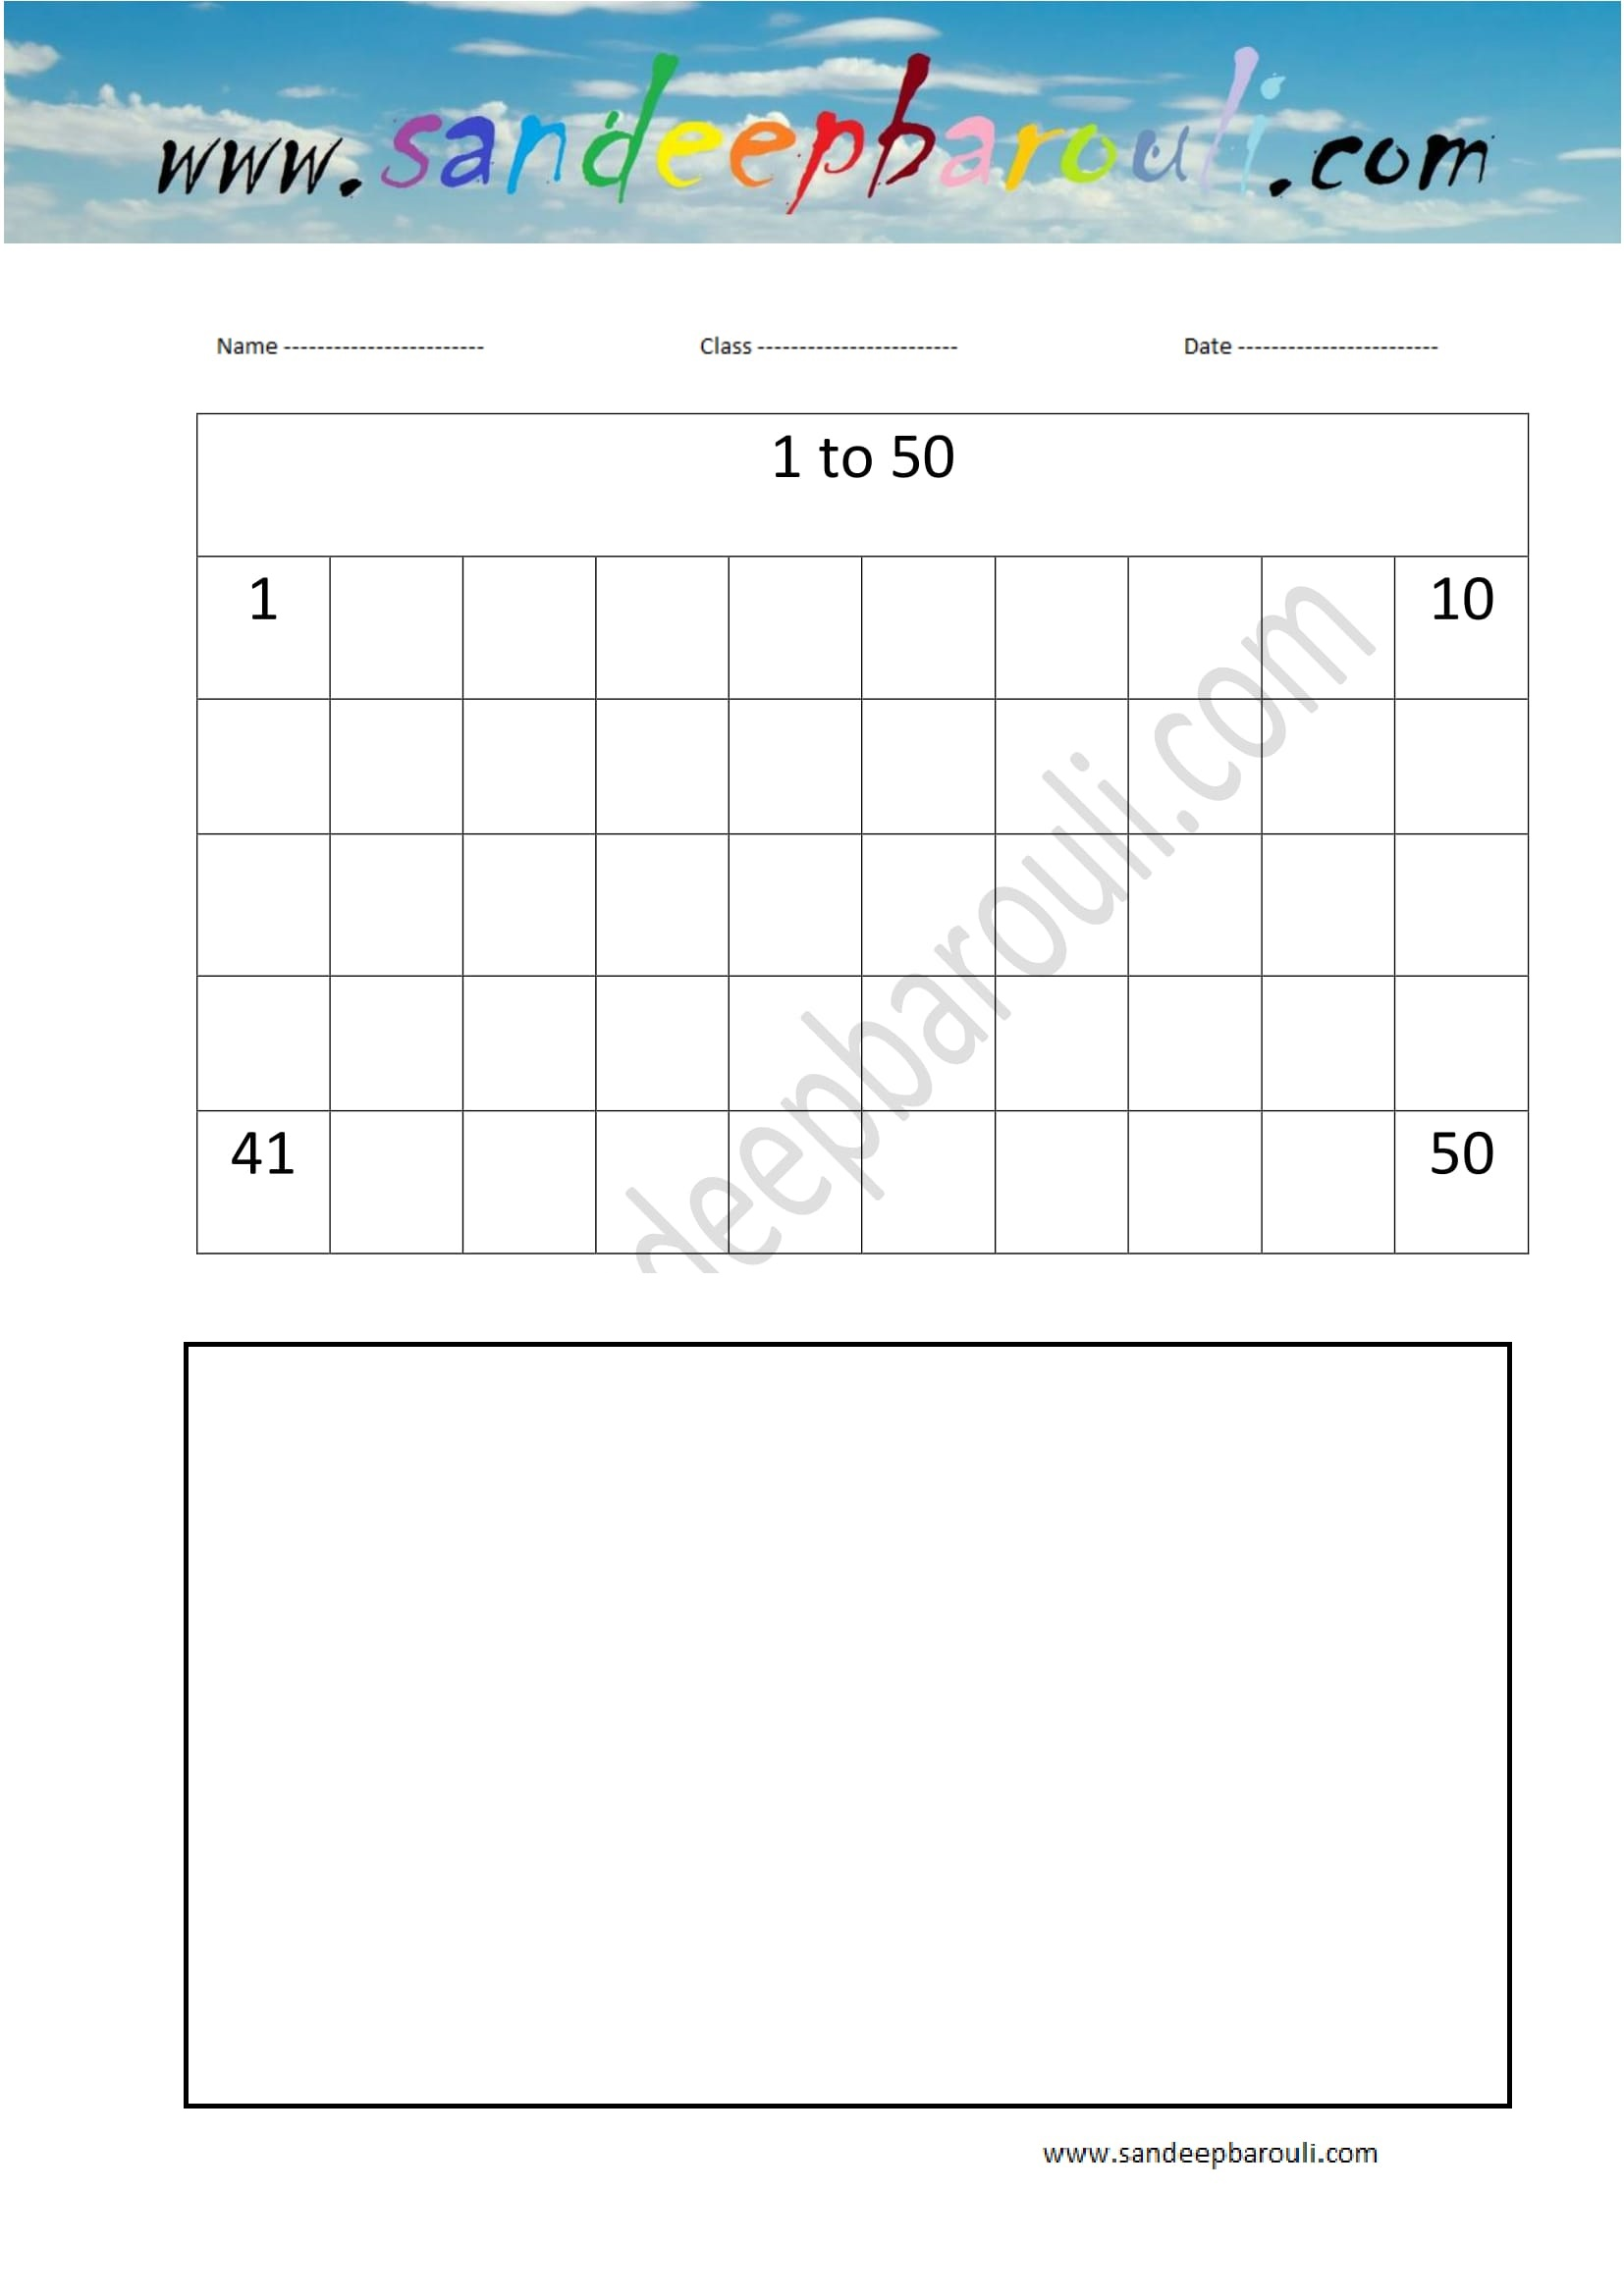 Math Worksheet For Kids 26 1 Sandeepbarouli